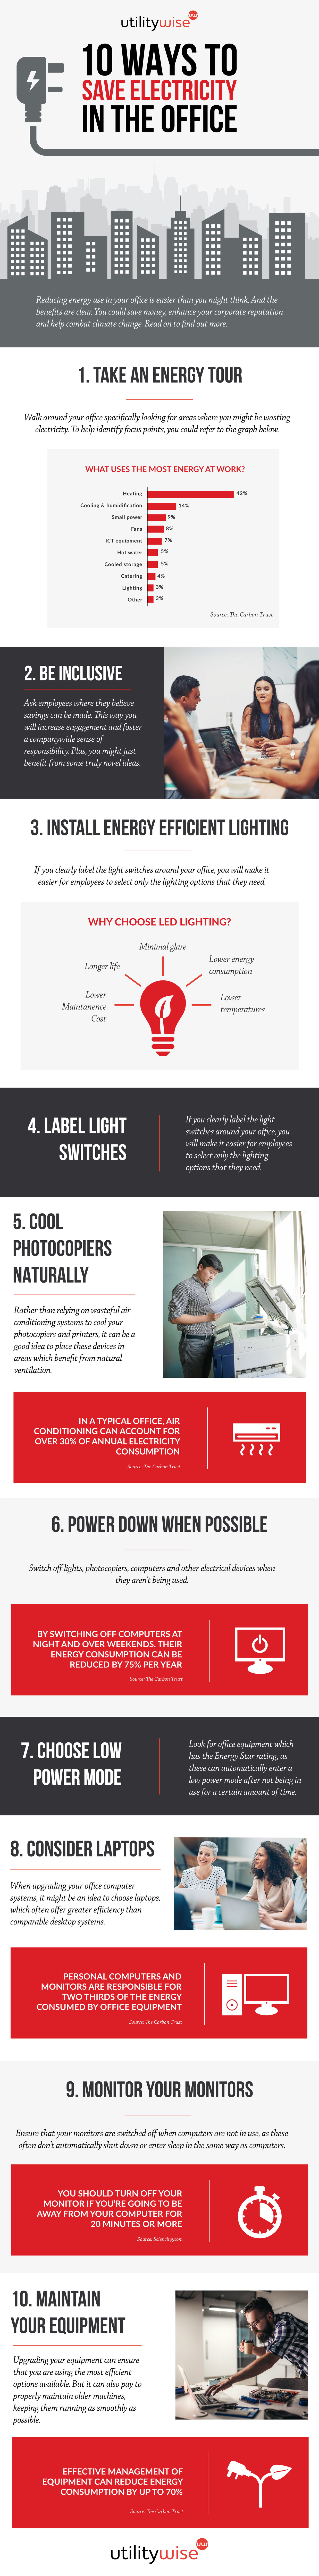 Utilitywise Save electricity Infographic